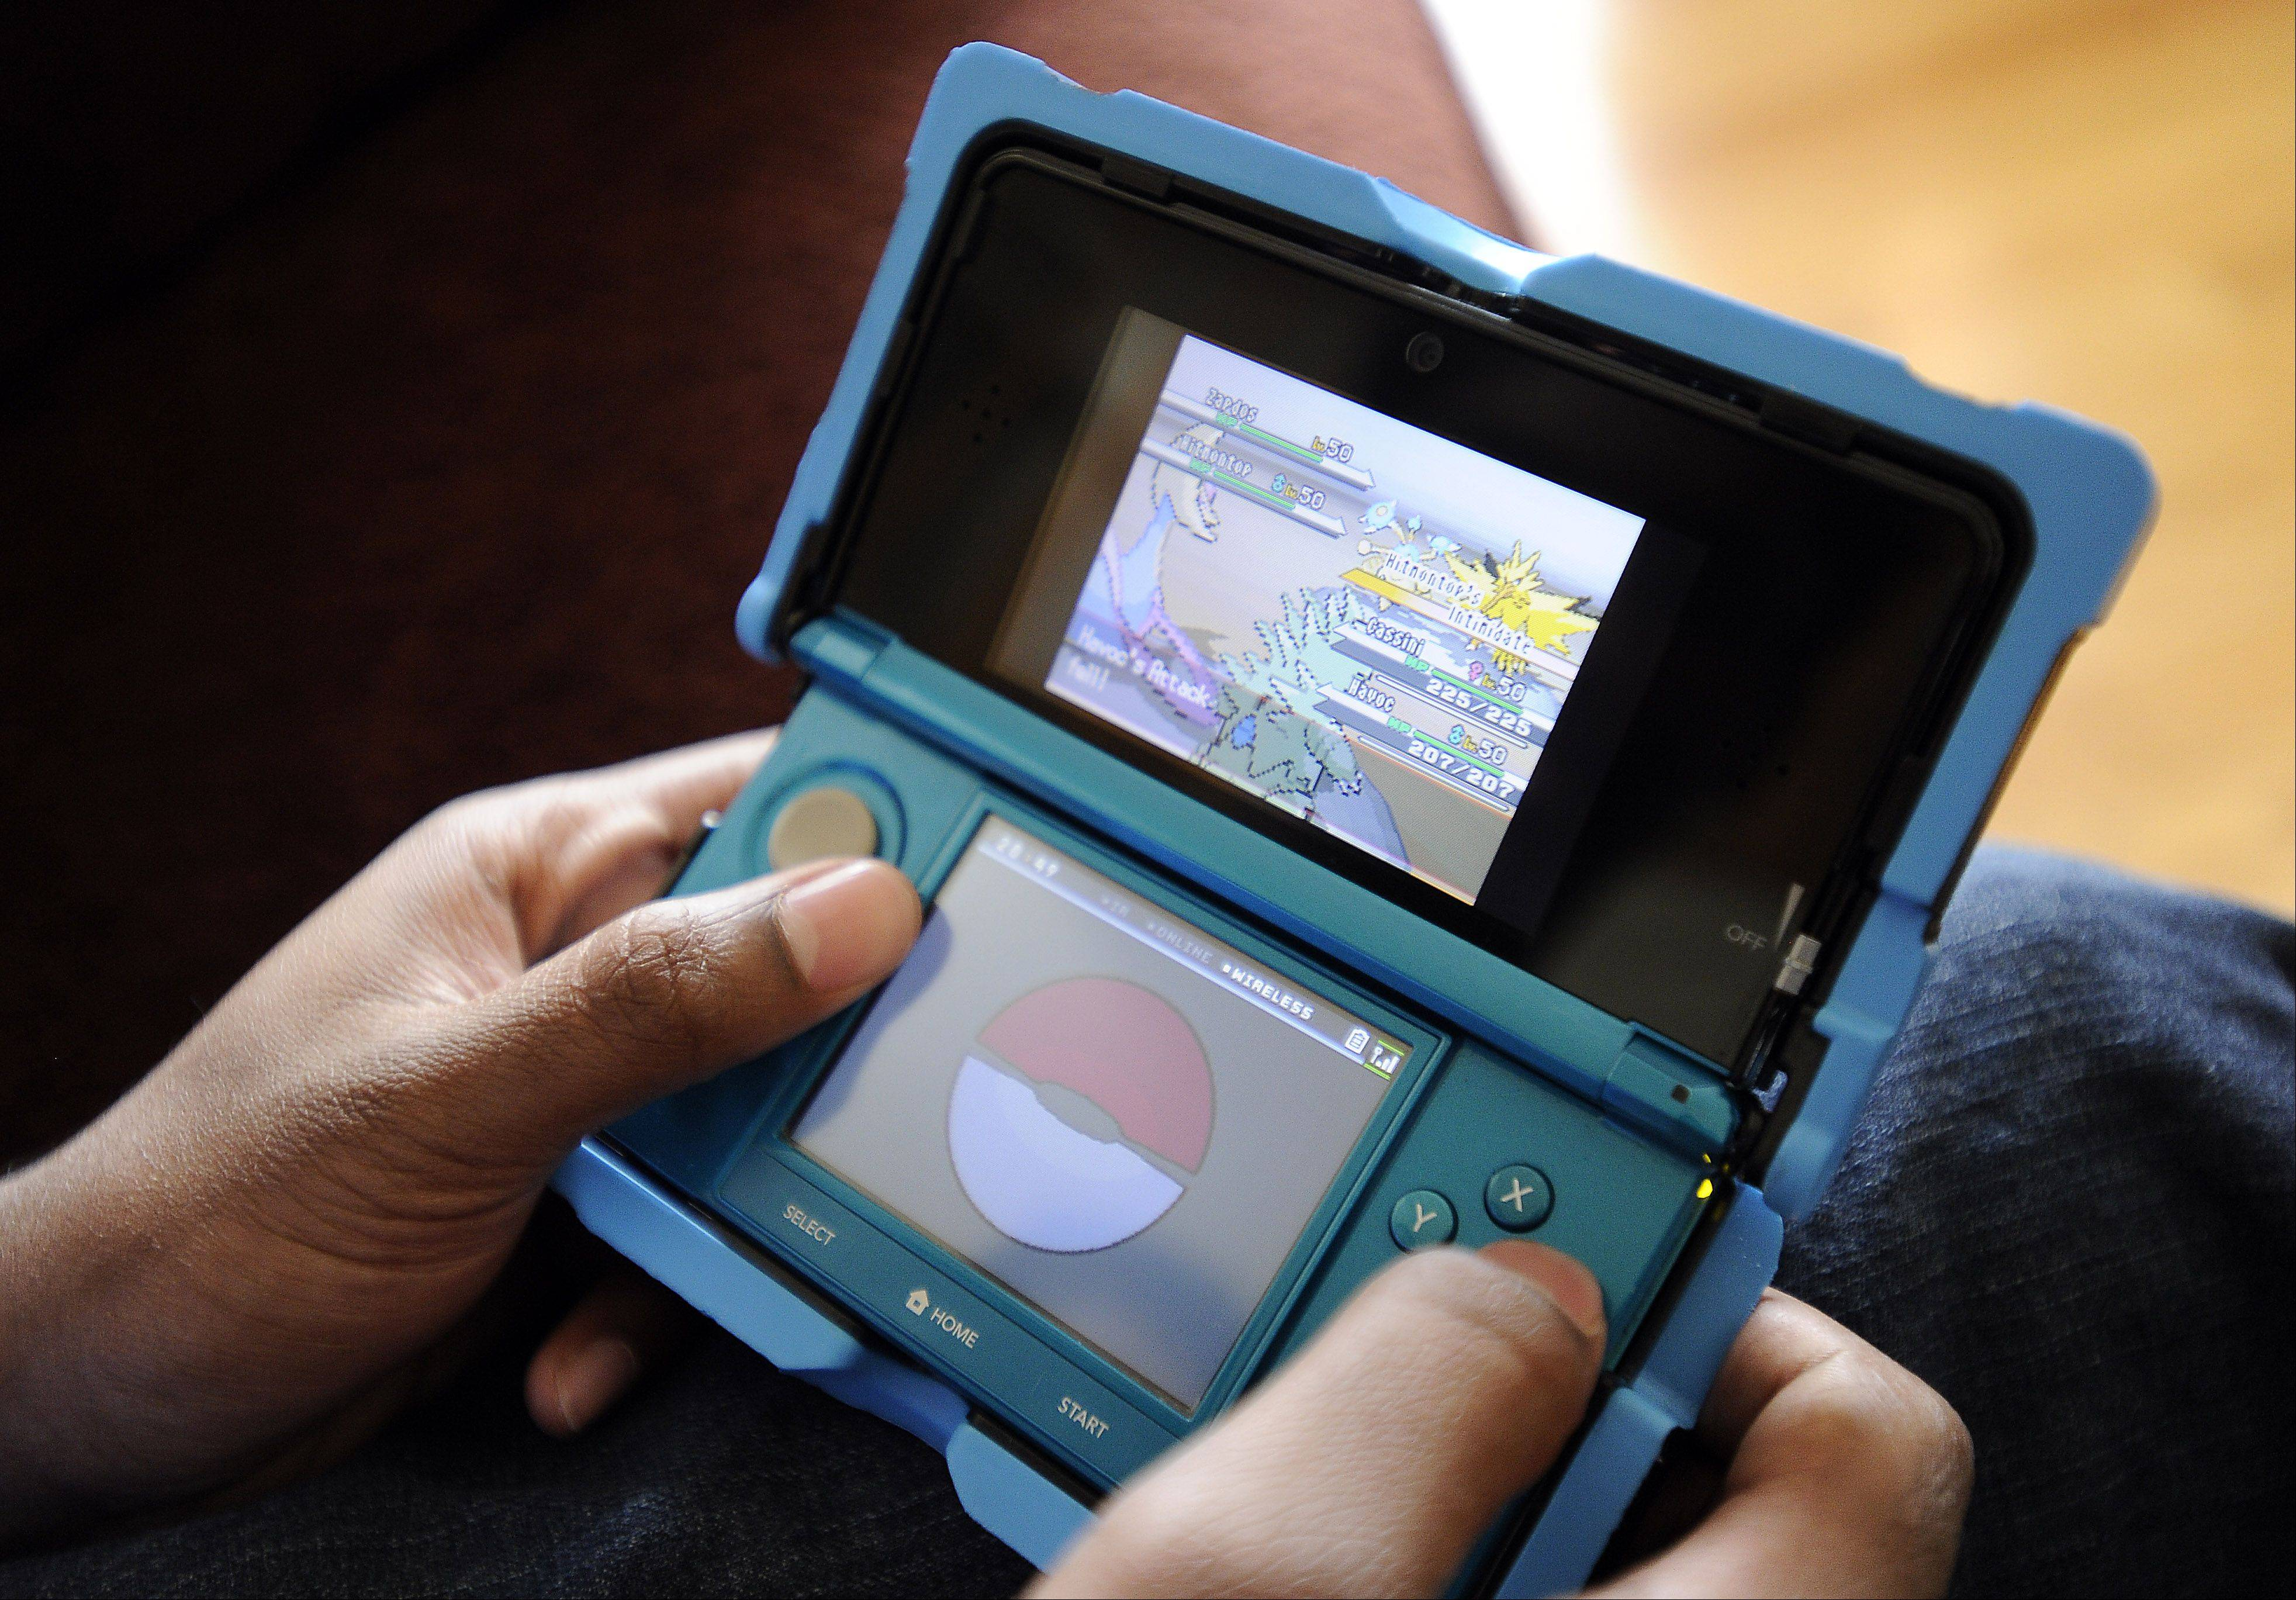 Manoj Sunny, 16, of Des Plaines -- known in online Pokemon circles as MangoSol -- is headed to Hawaii in August for the 2012 World Pokemon Championships. He is one of 36 Americans to qualify for the competition.